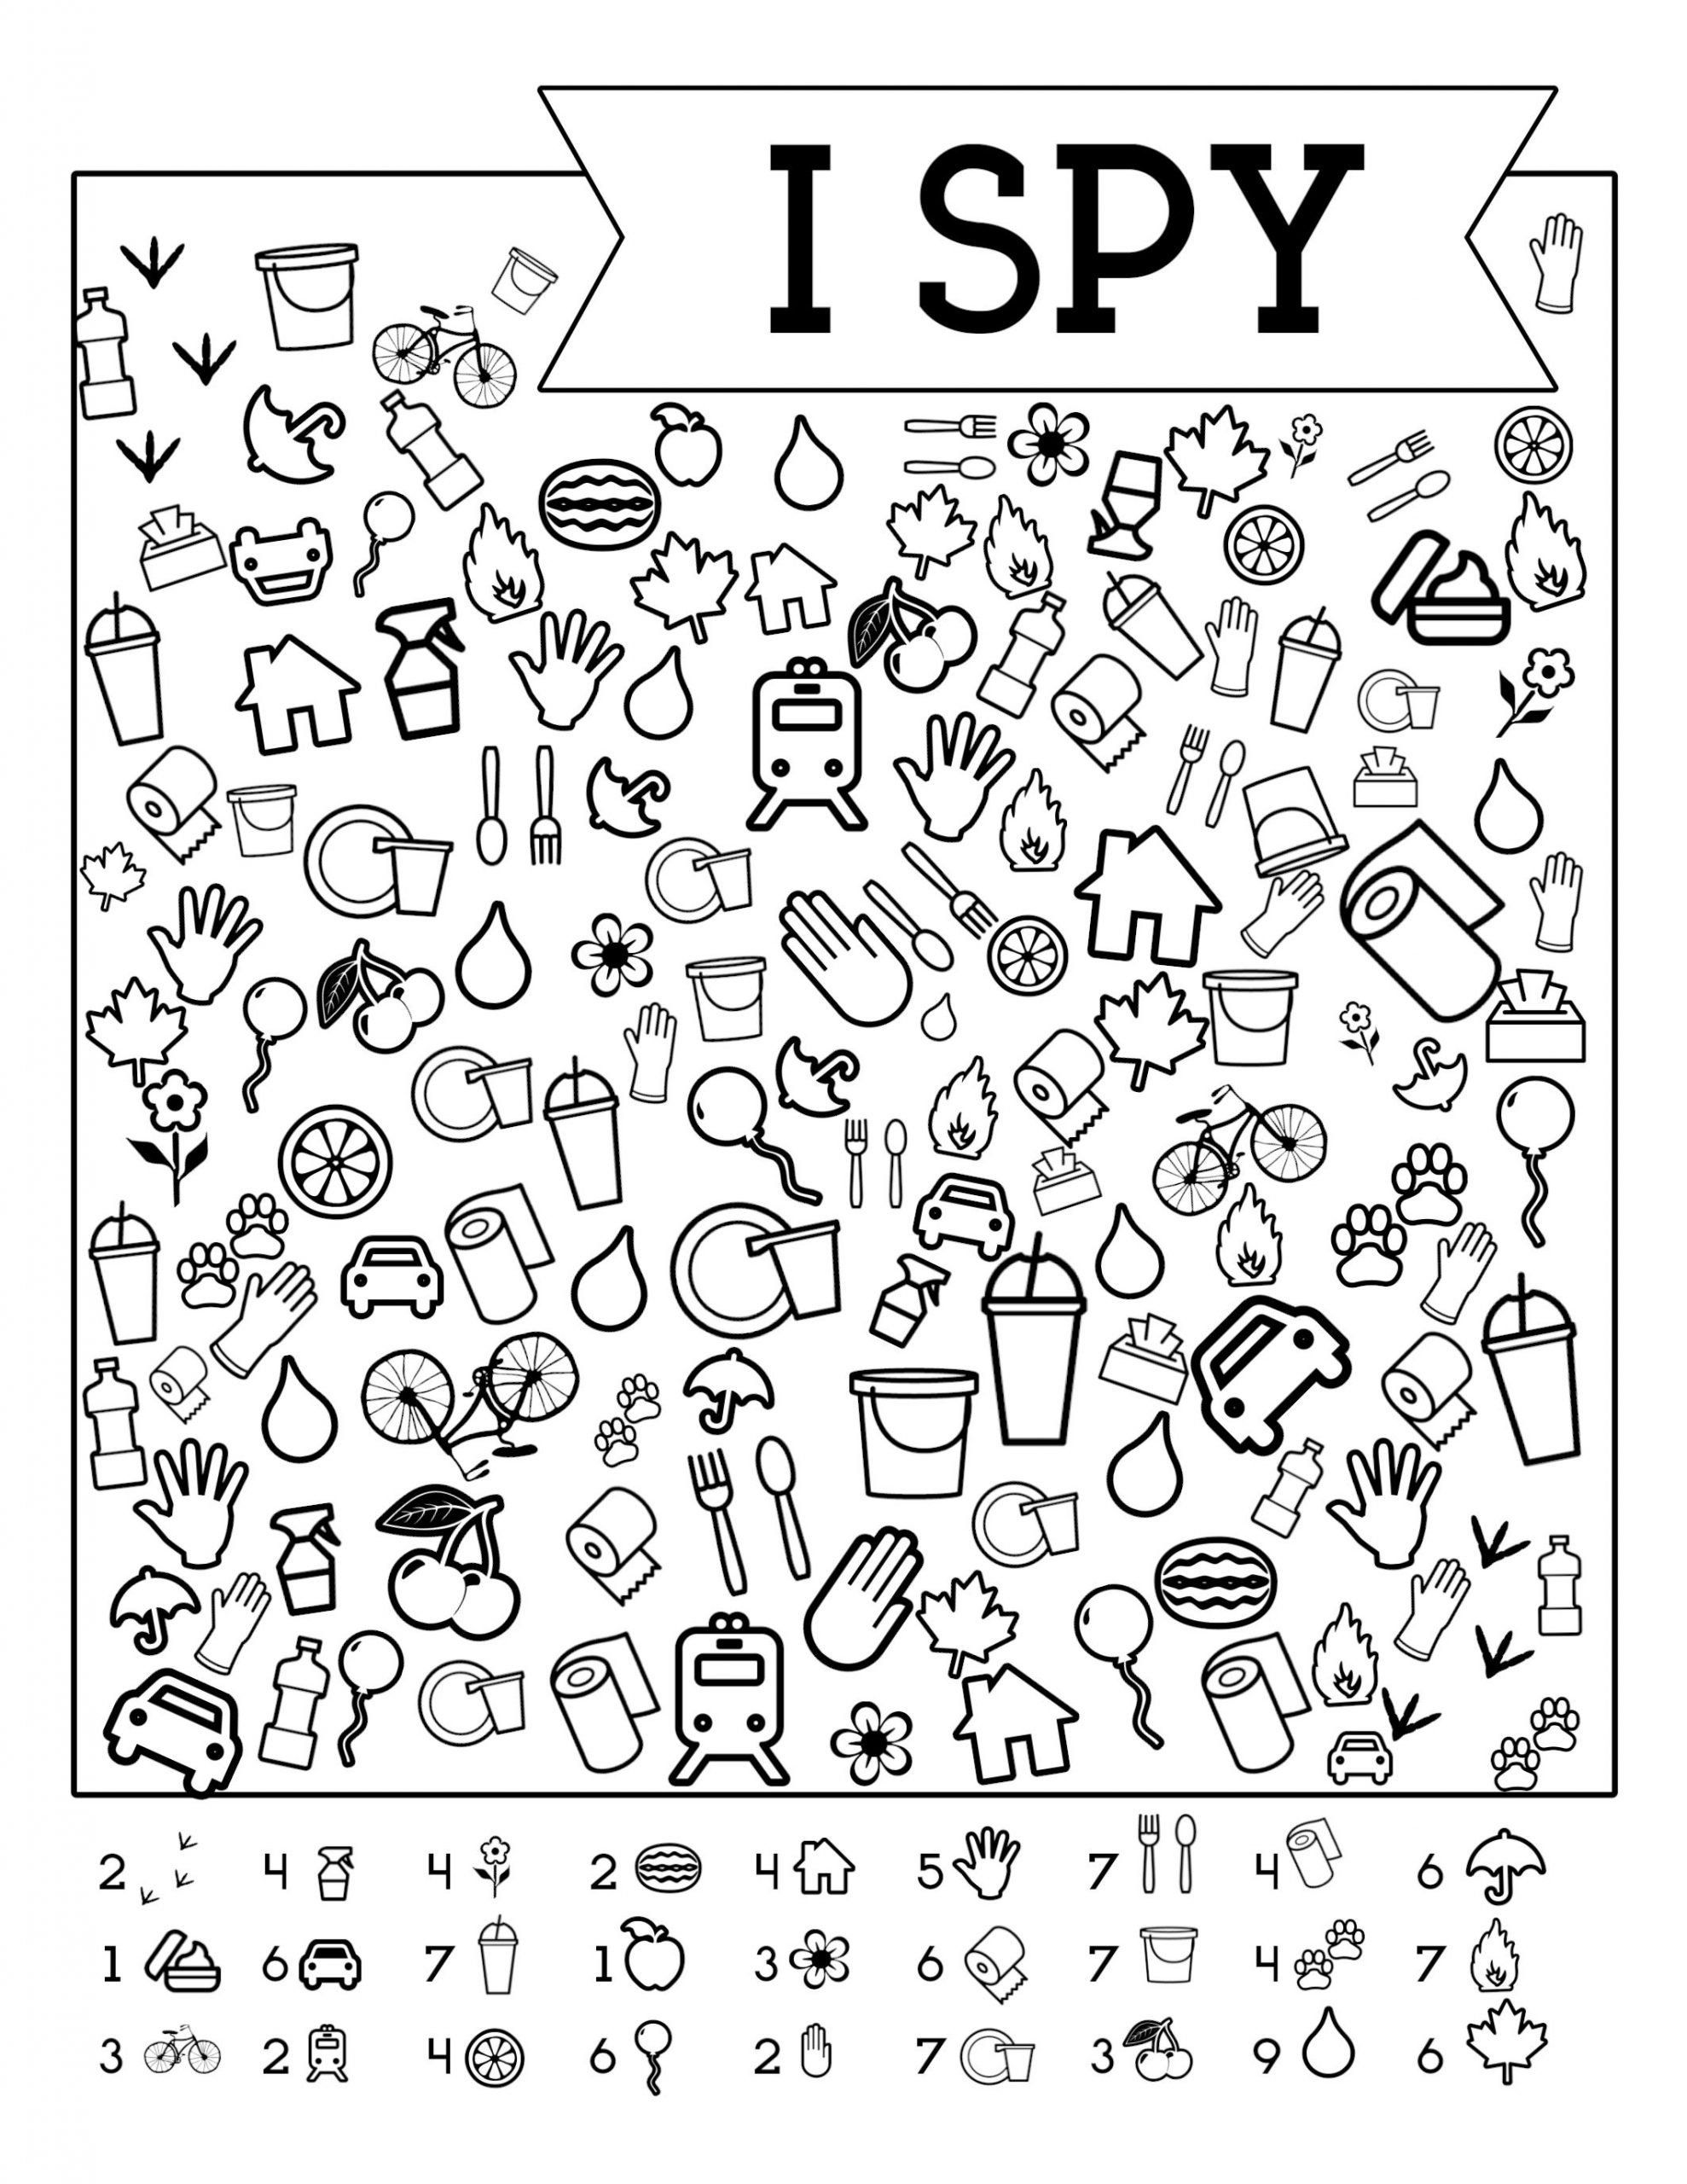 6th Grade Math Puzzles Worksheets Worksheet Ideas The